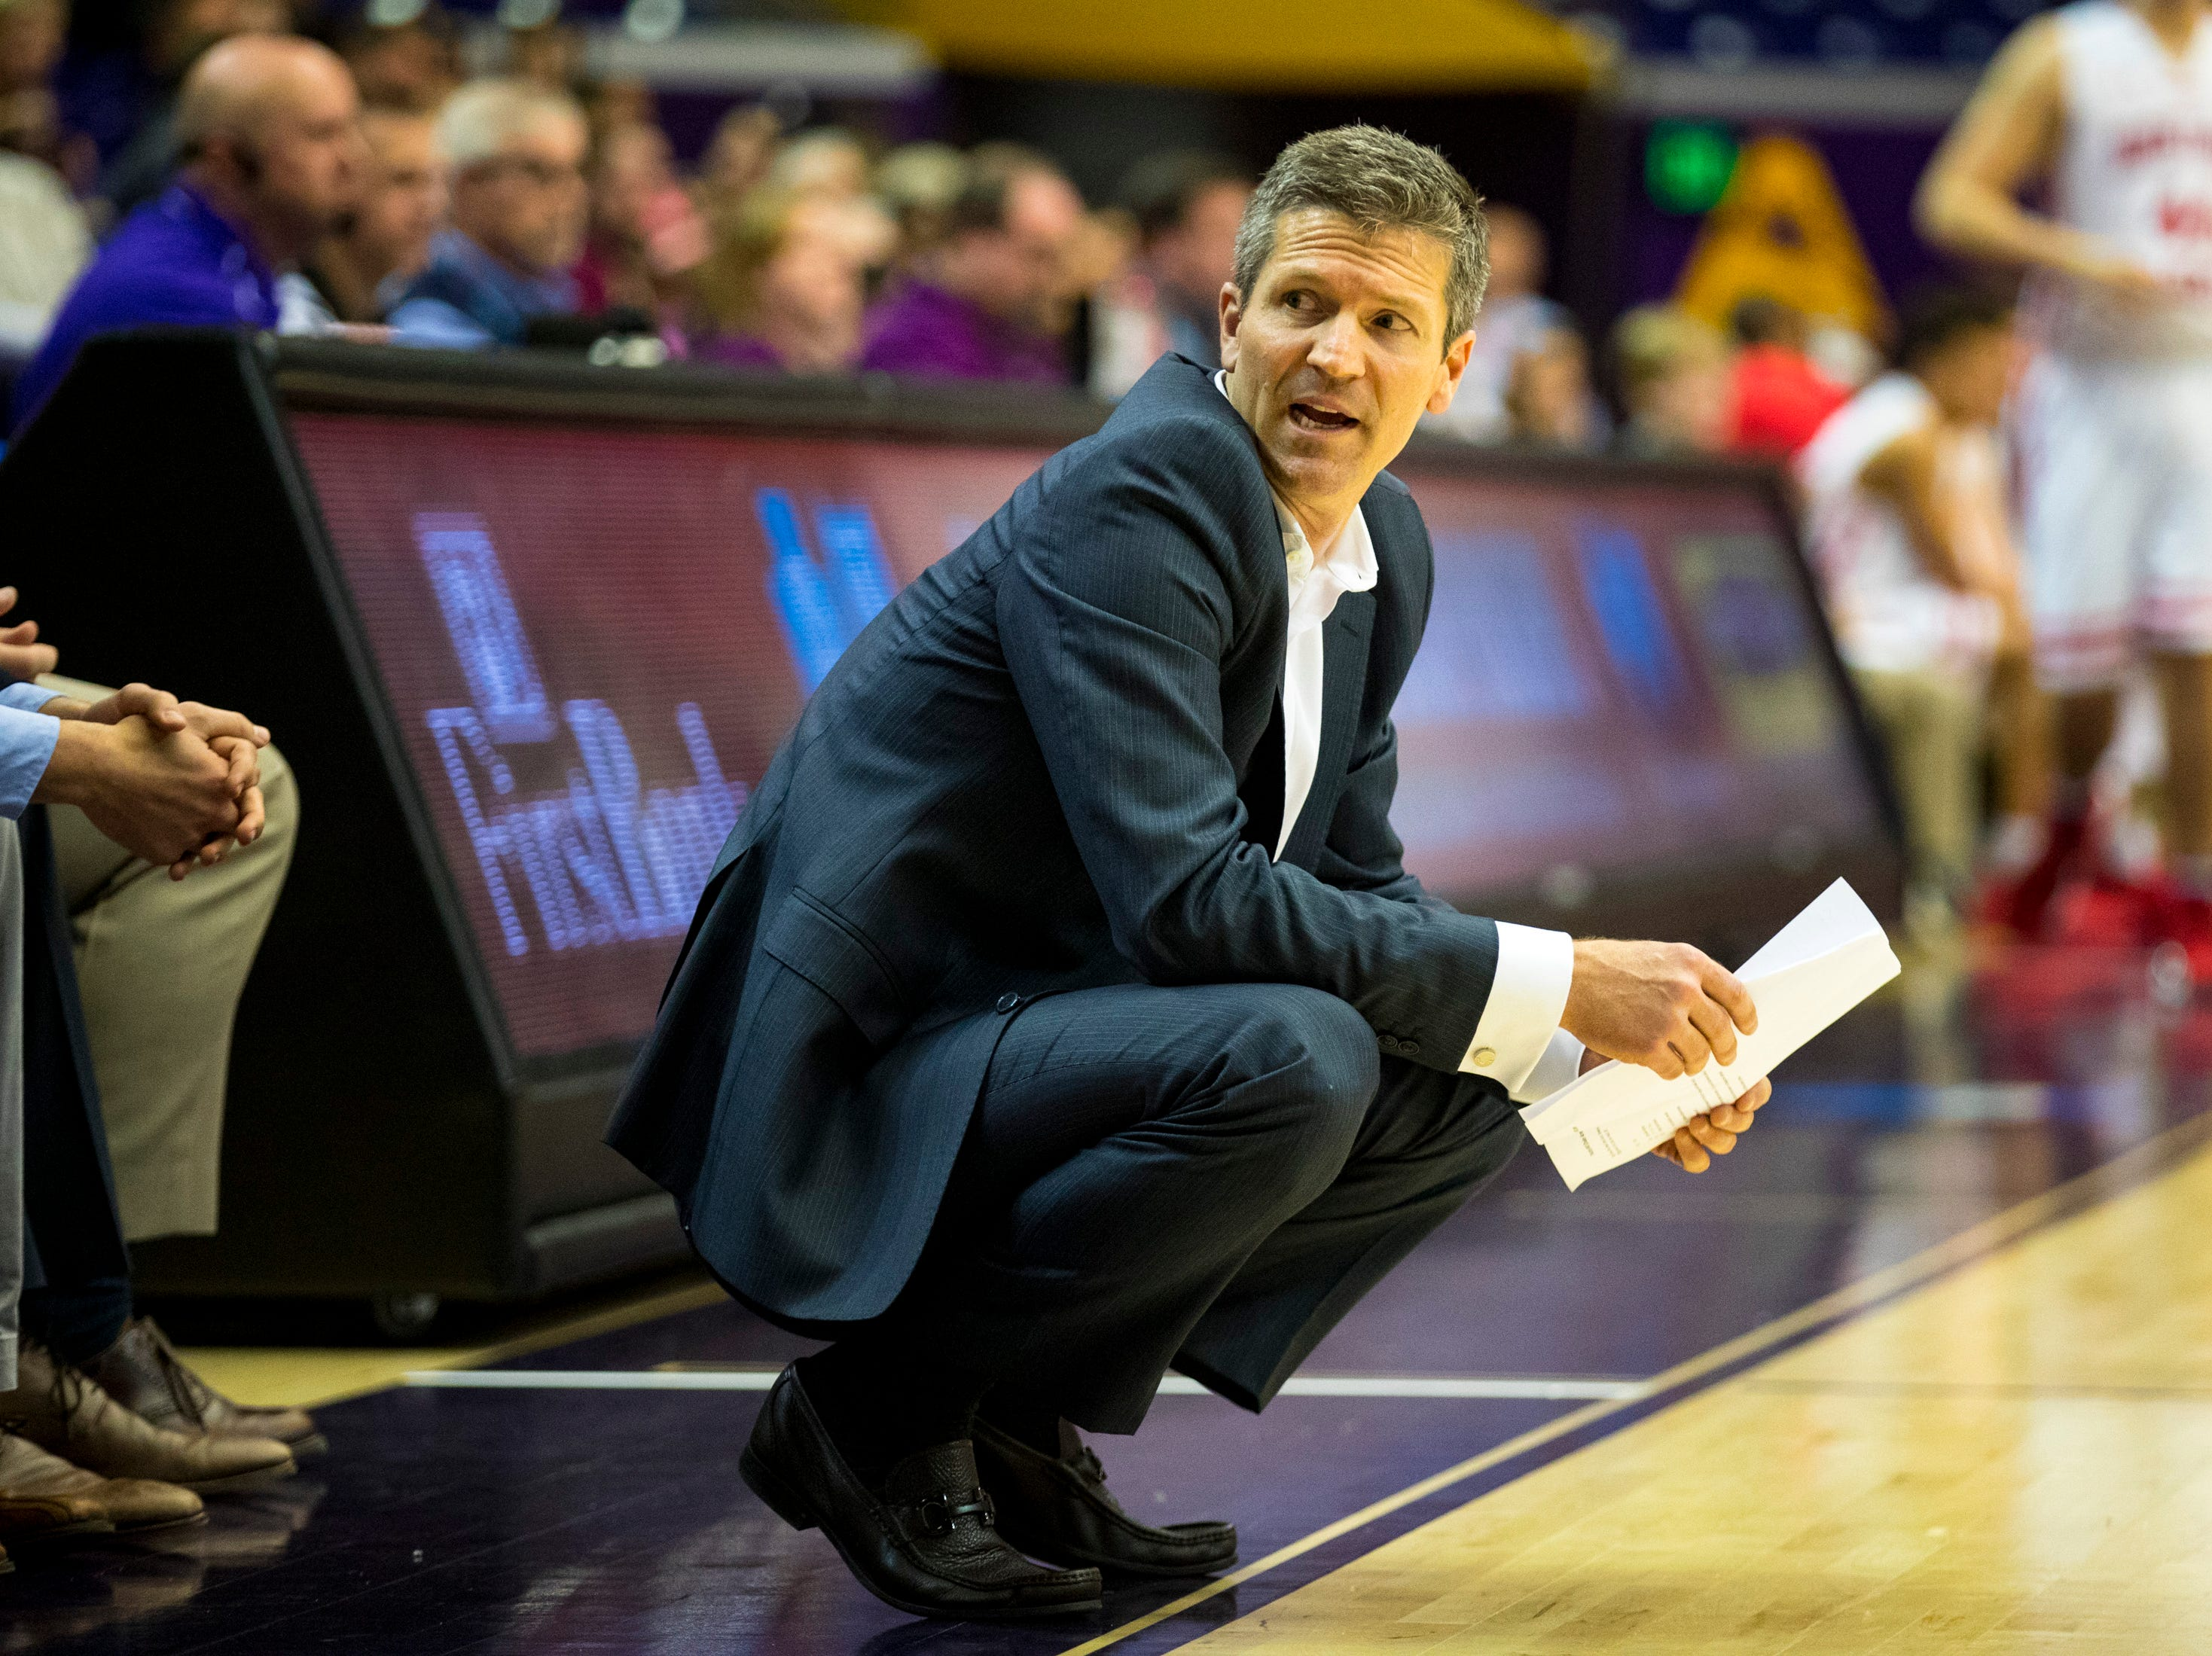 Baylor's head coach Mark Price during Brentwood Academy's game against Baylor in the semifinal round of the TSSAA Division II Class AA State Championships at Lipscomb University's Allen Arena in Nashville on Thursday, Feb. 28, 2019.